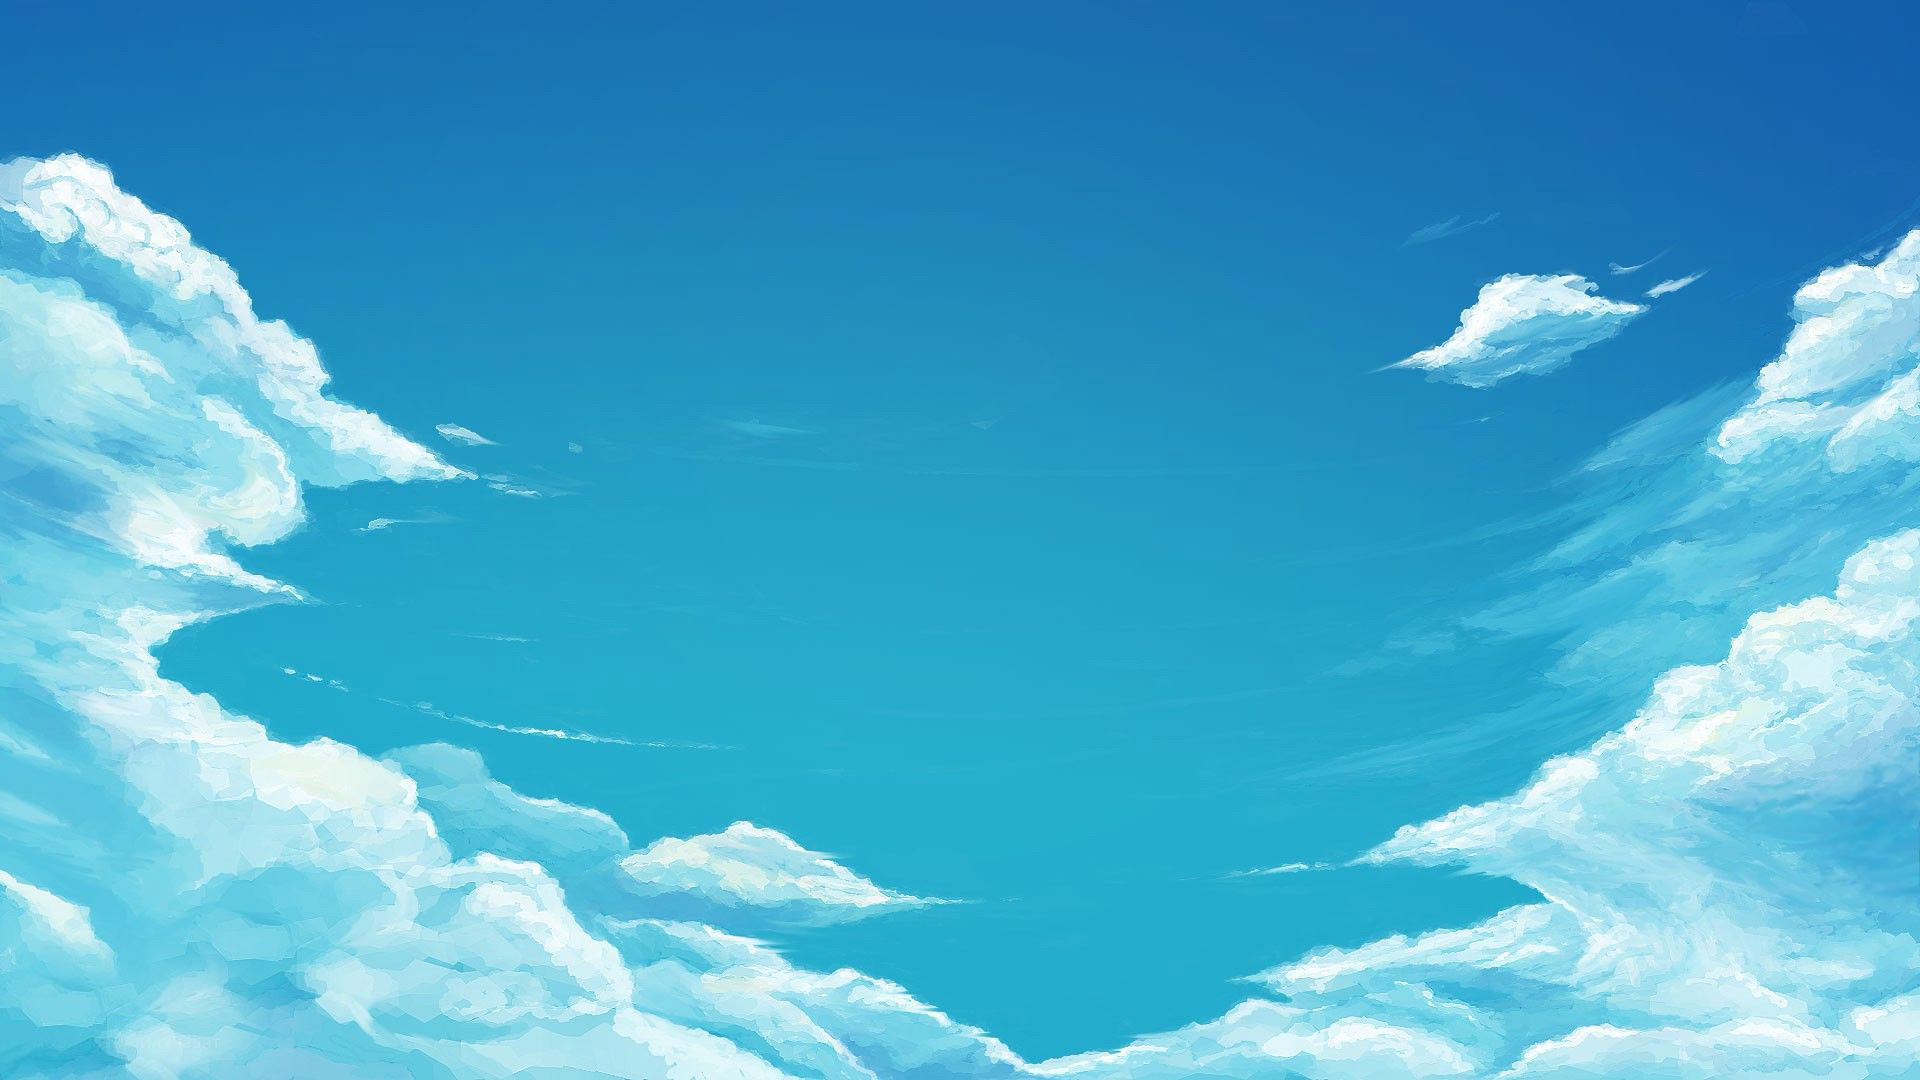 More Sky Wallpapers – HD Wallpapers Backgrounds of Your Choice